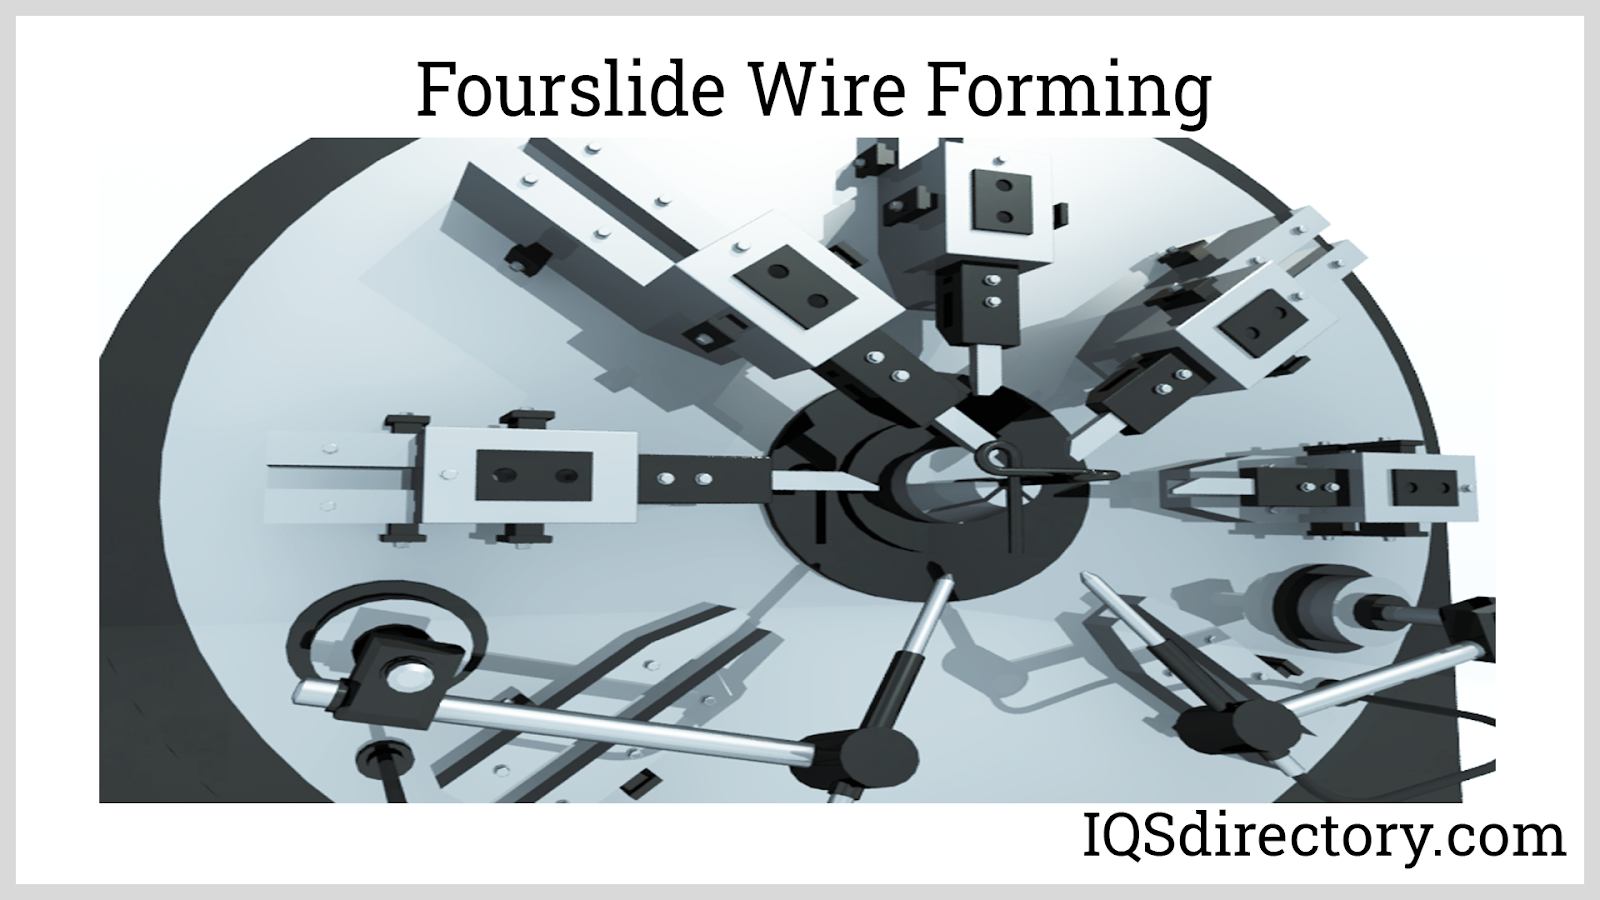 Fourslide Wire Forming